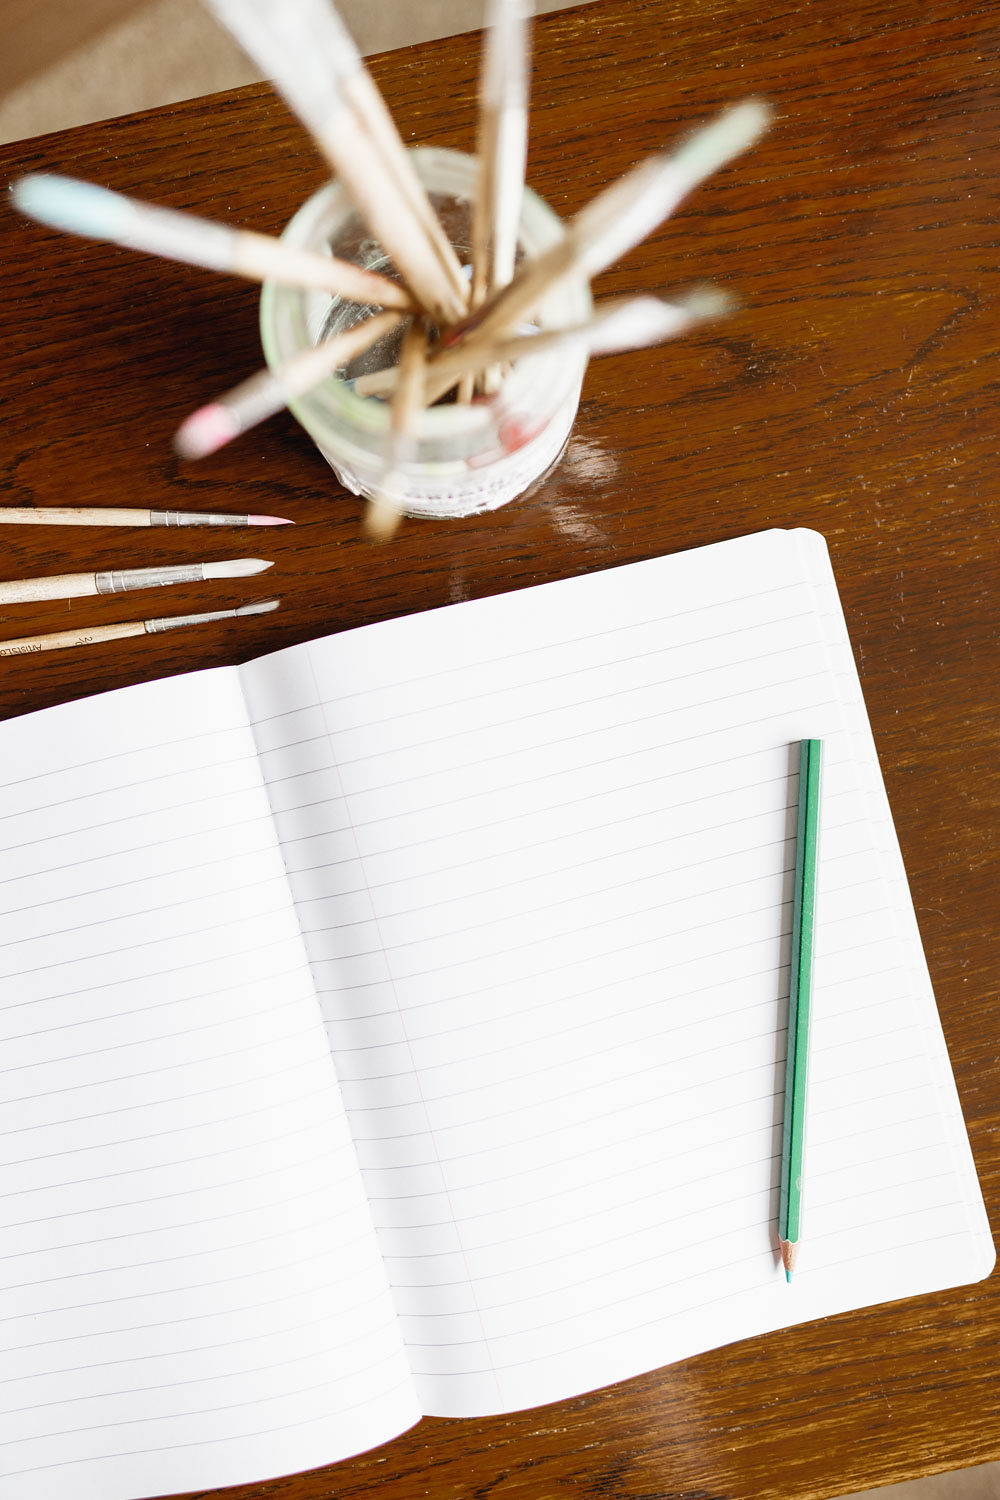 An open notebook with a green pencil lying over the right-hand page. Above the notebook are 4 paintbrushes of various sizes (parallel to the top of the notebook) and a jar containing several more brushes. Photograph taken from above.